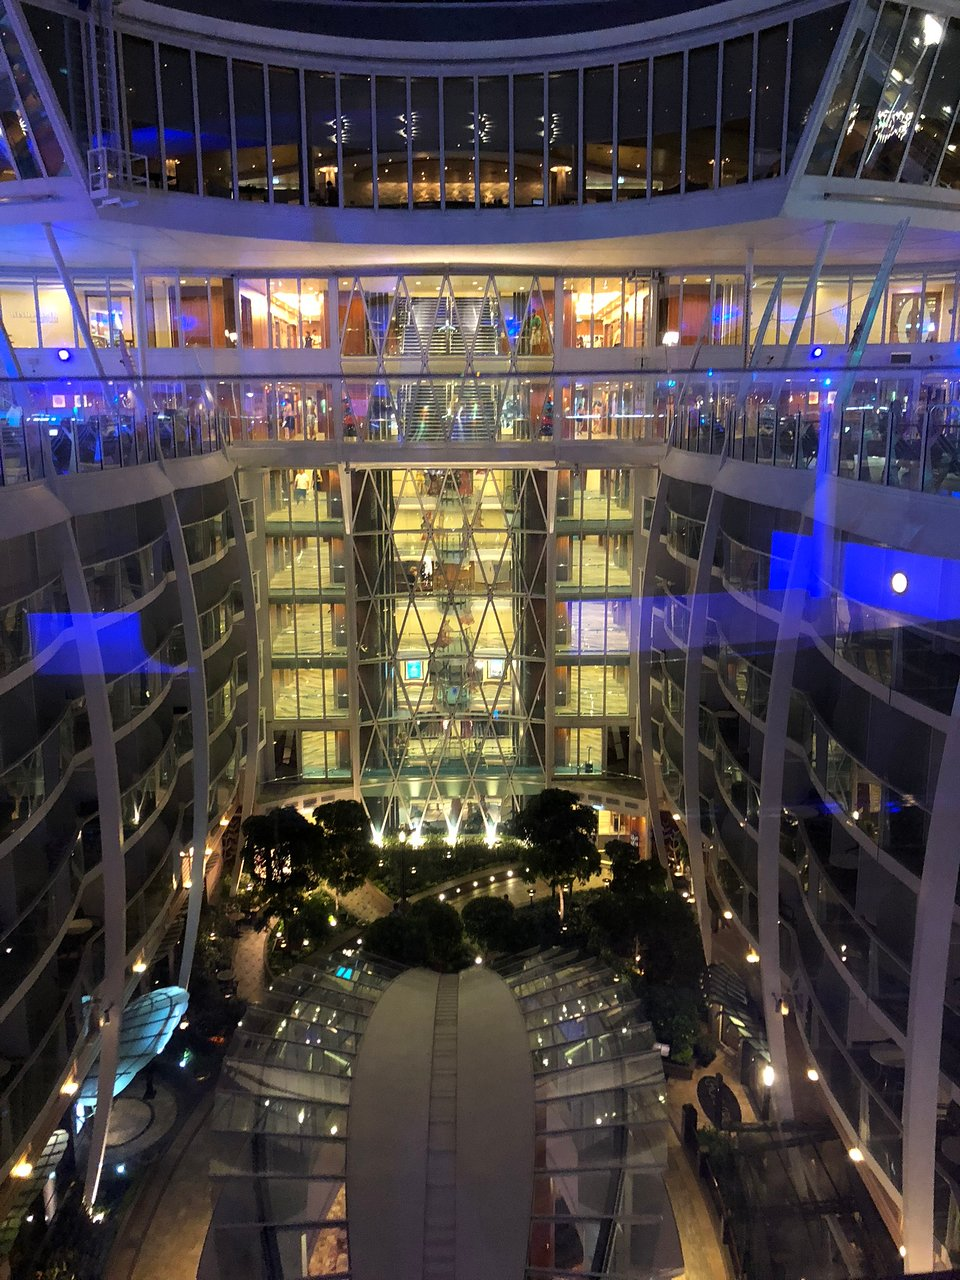 Royal Caribbean Allure Of The Seas Deck Plans Reviews Pictures Tripadvisor